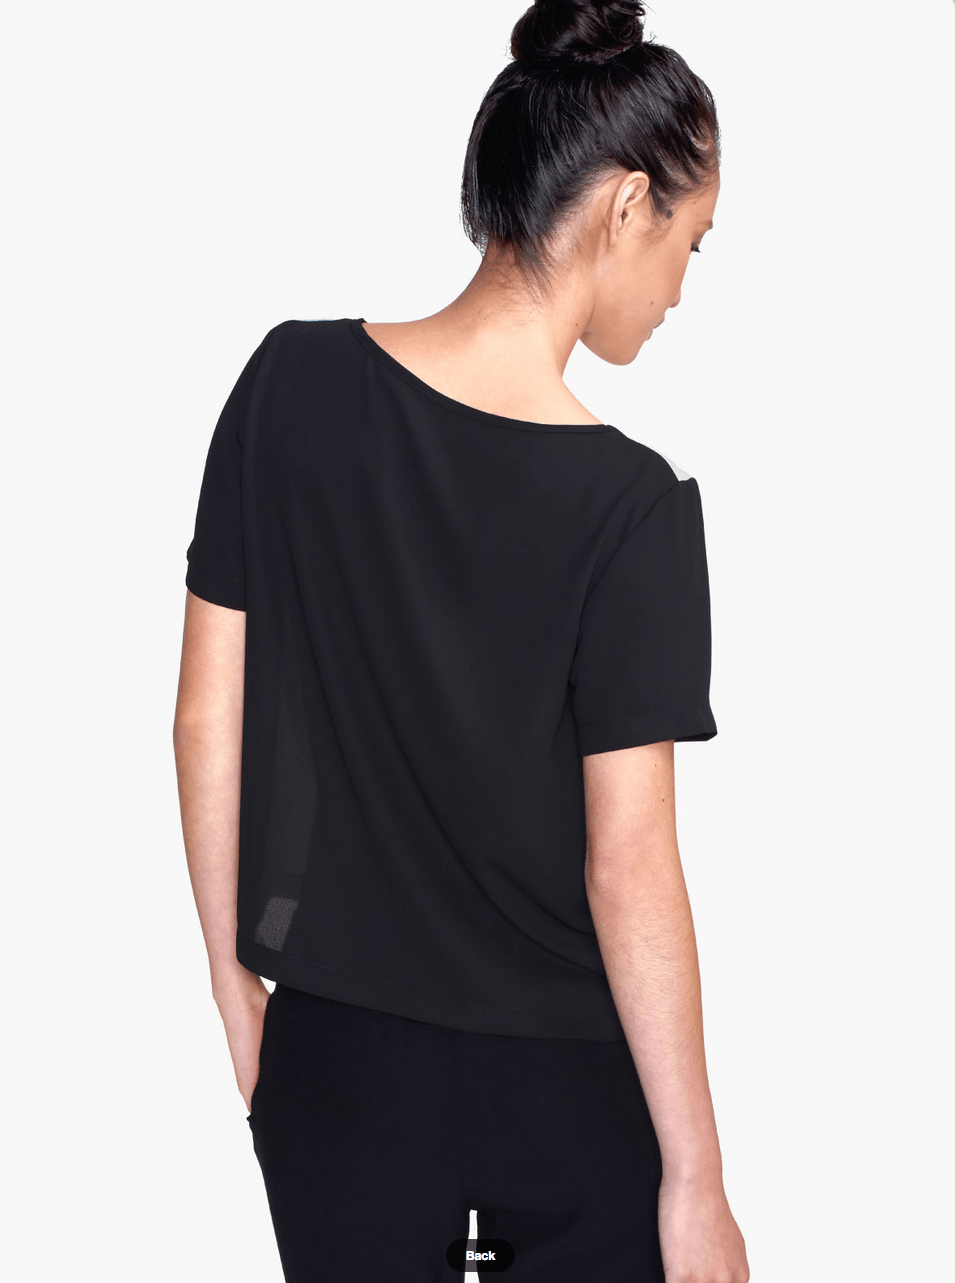 Two Circles top - Chiffon Tops - Women Blouse - Modern Clothing-TheGretest